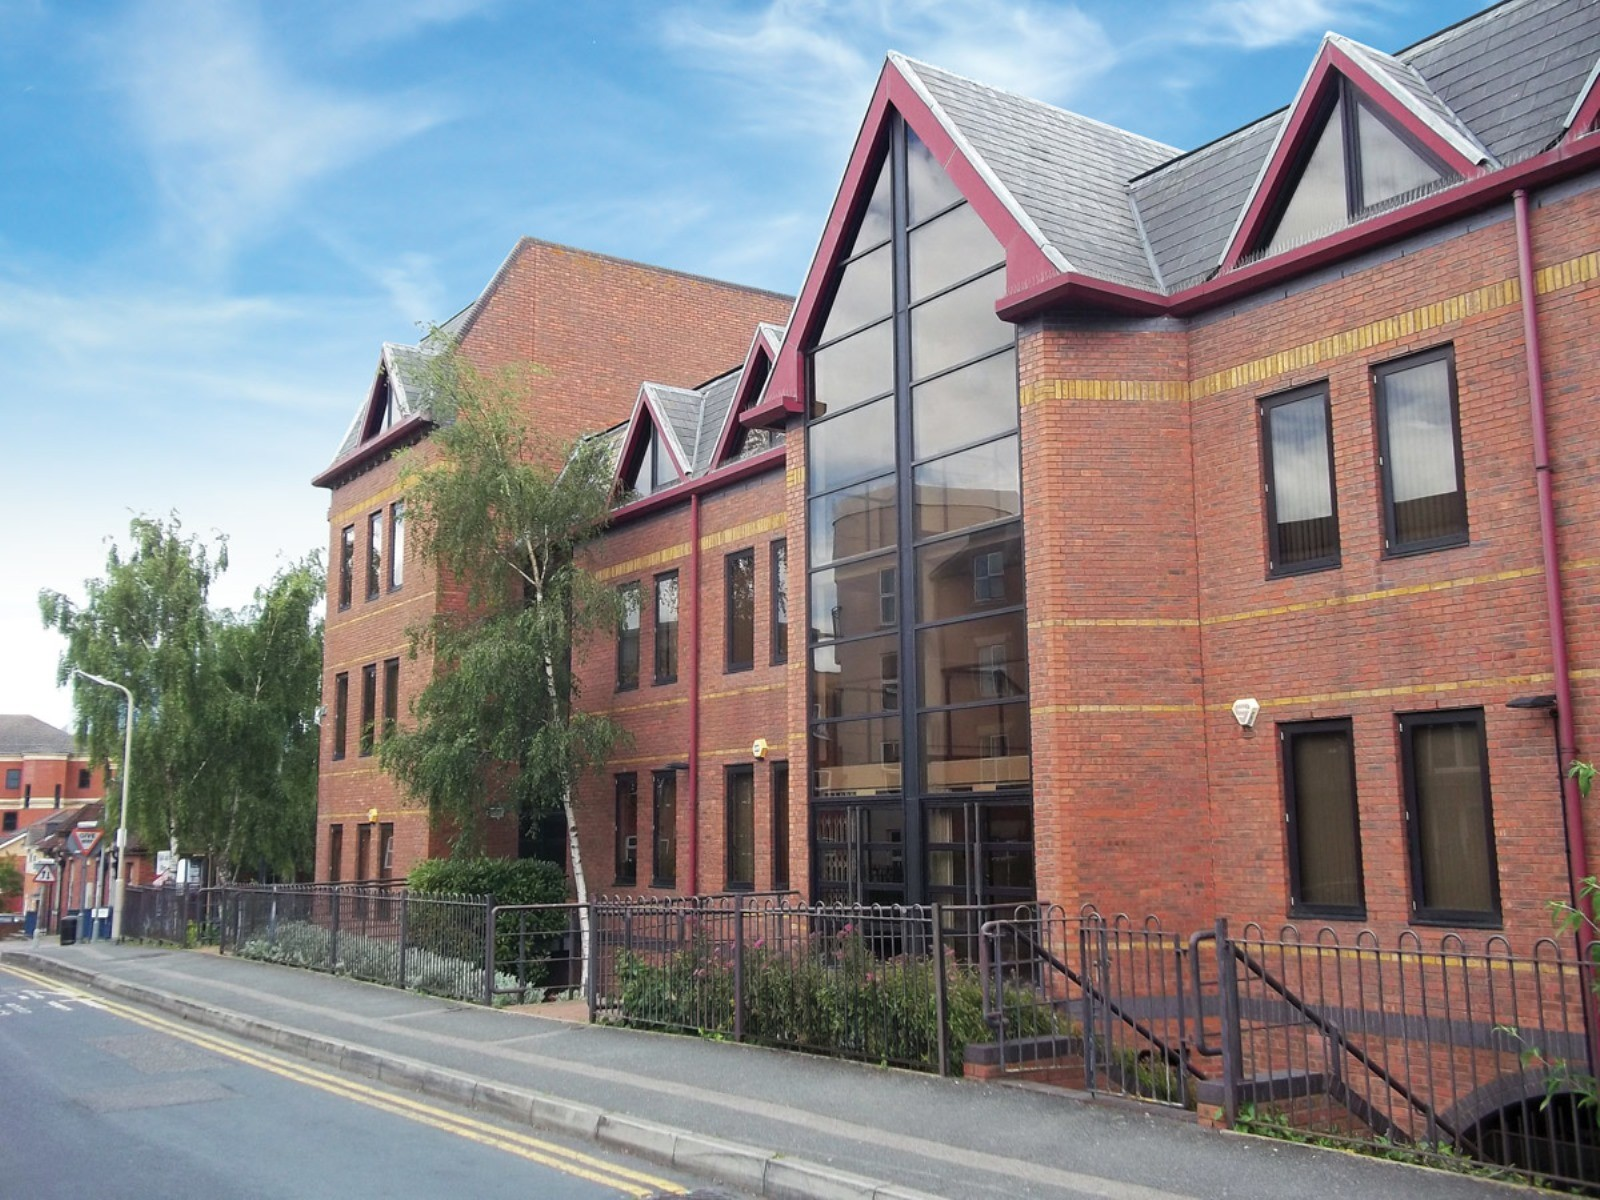 The Chambers, South Street, Reading, RG1 4FG